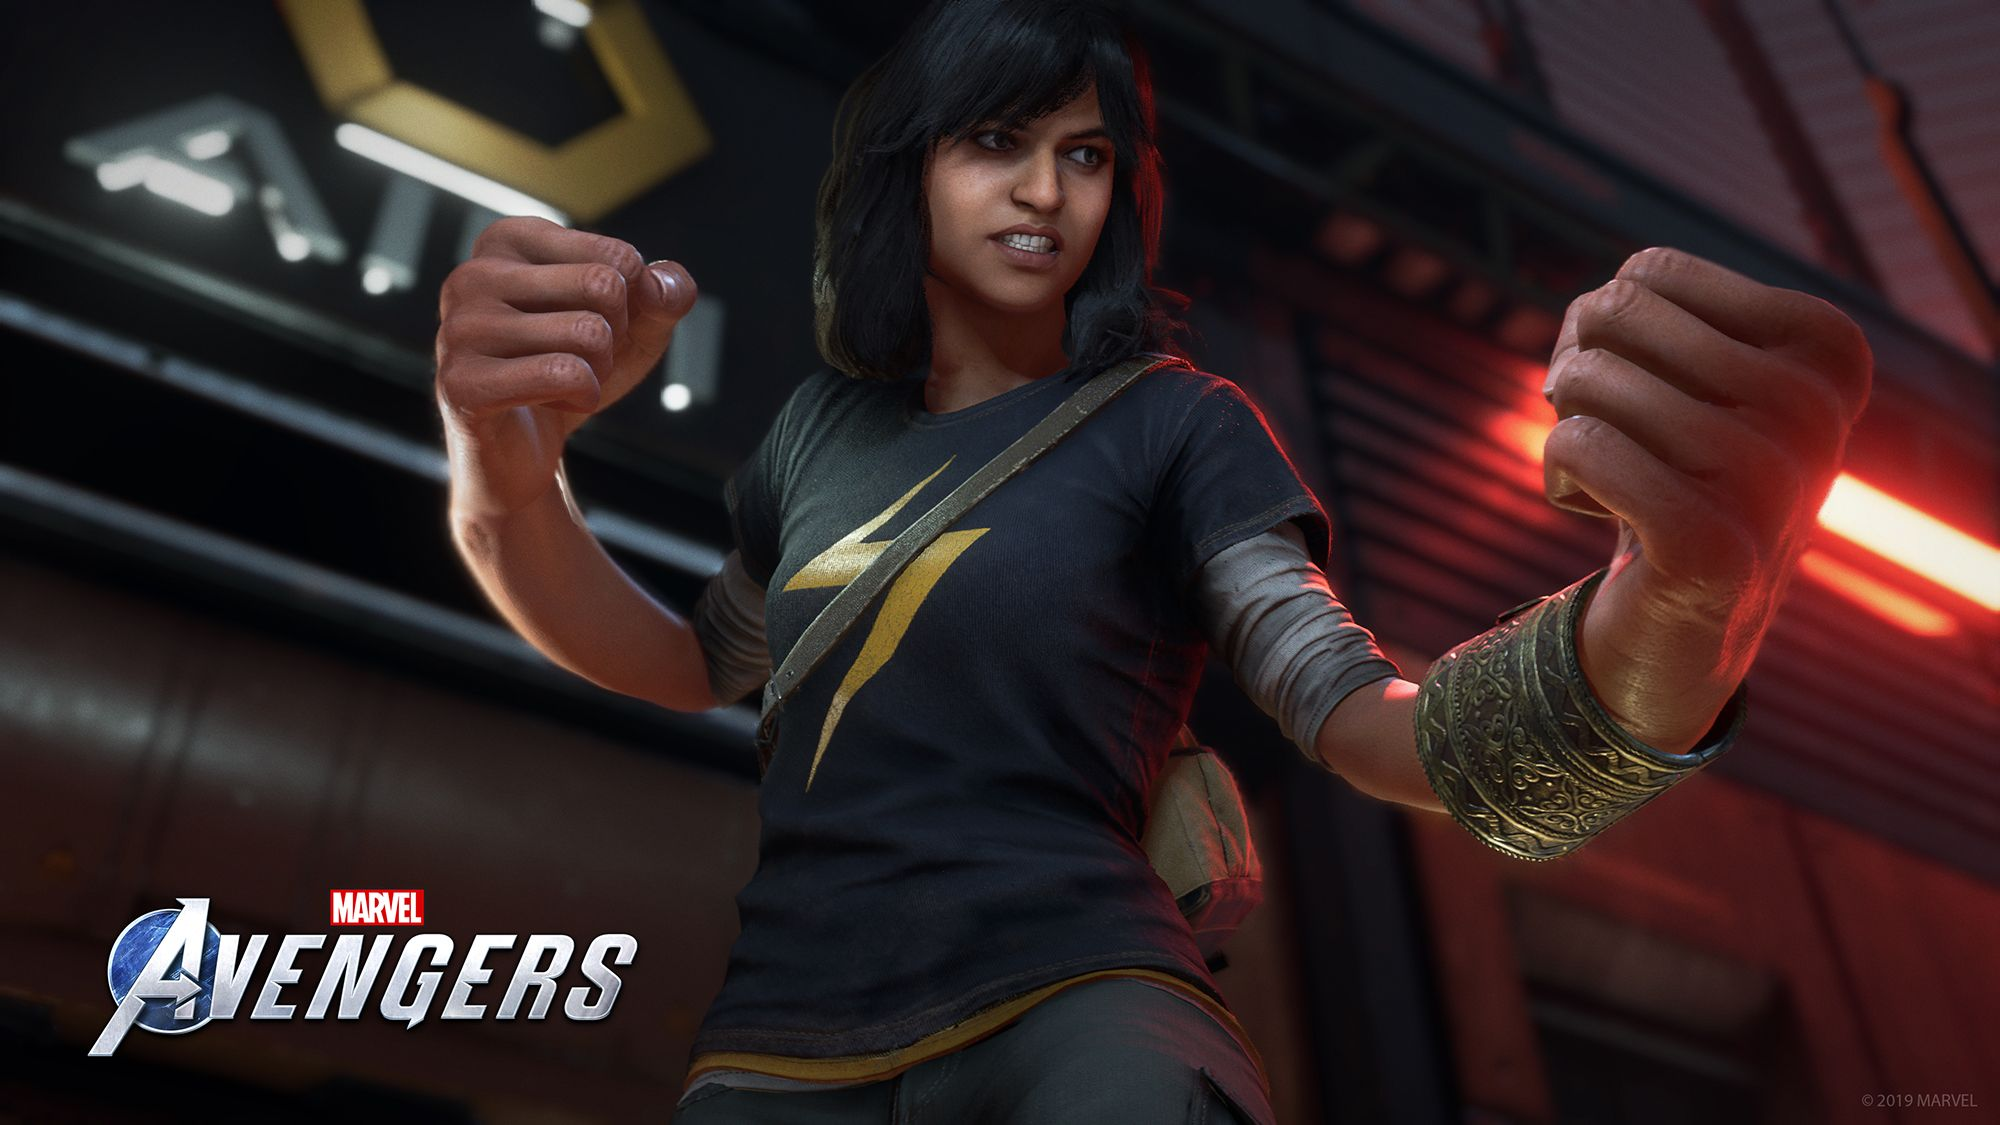 Kamala Khan—A.K.A. Ms. Marvel—Was Just Revealed in a New Trailer for the Marvel's Avengers Video Game